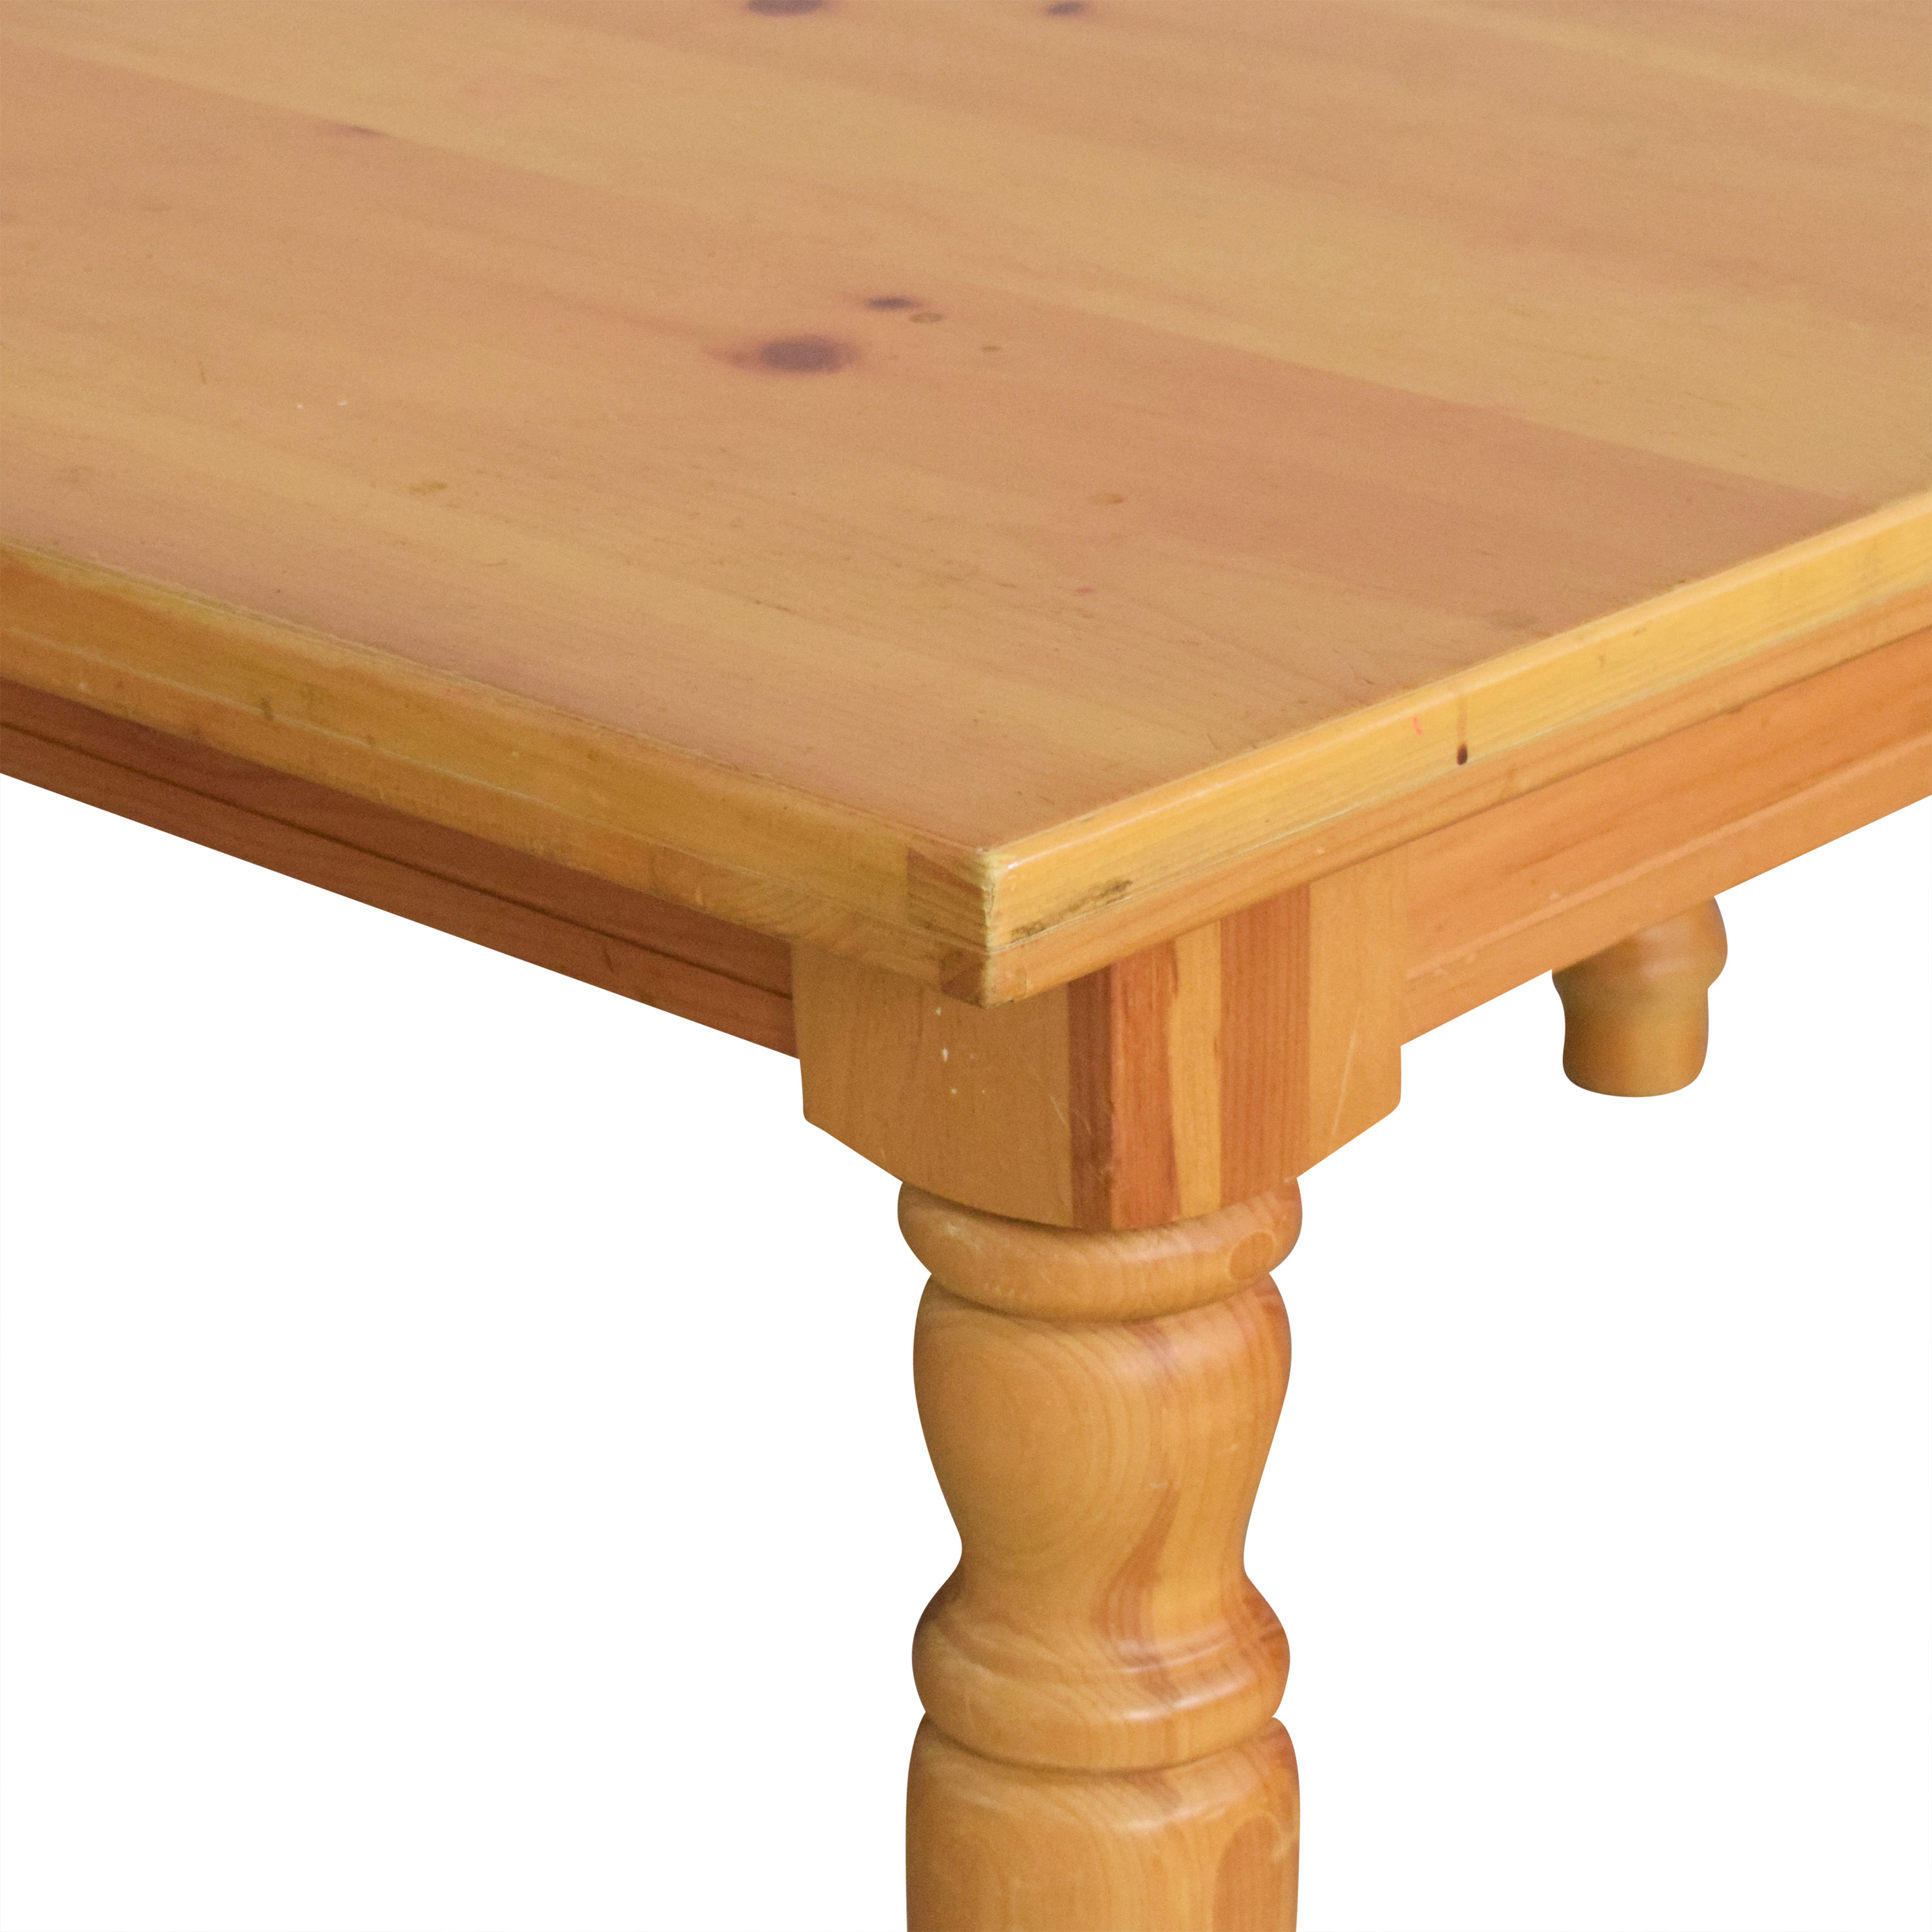 Broyhill Furniture Broyhill Extendable Dining Table second hand